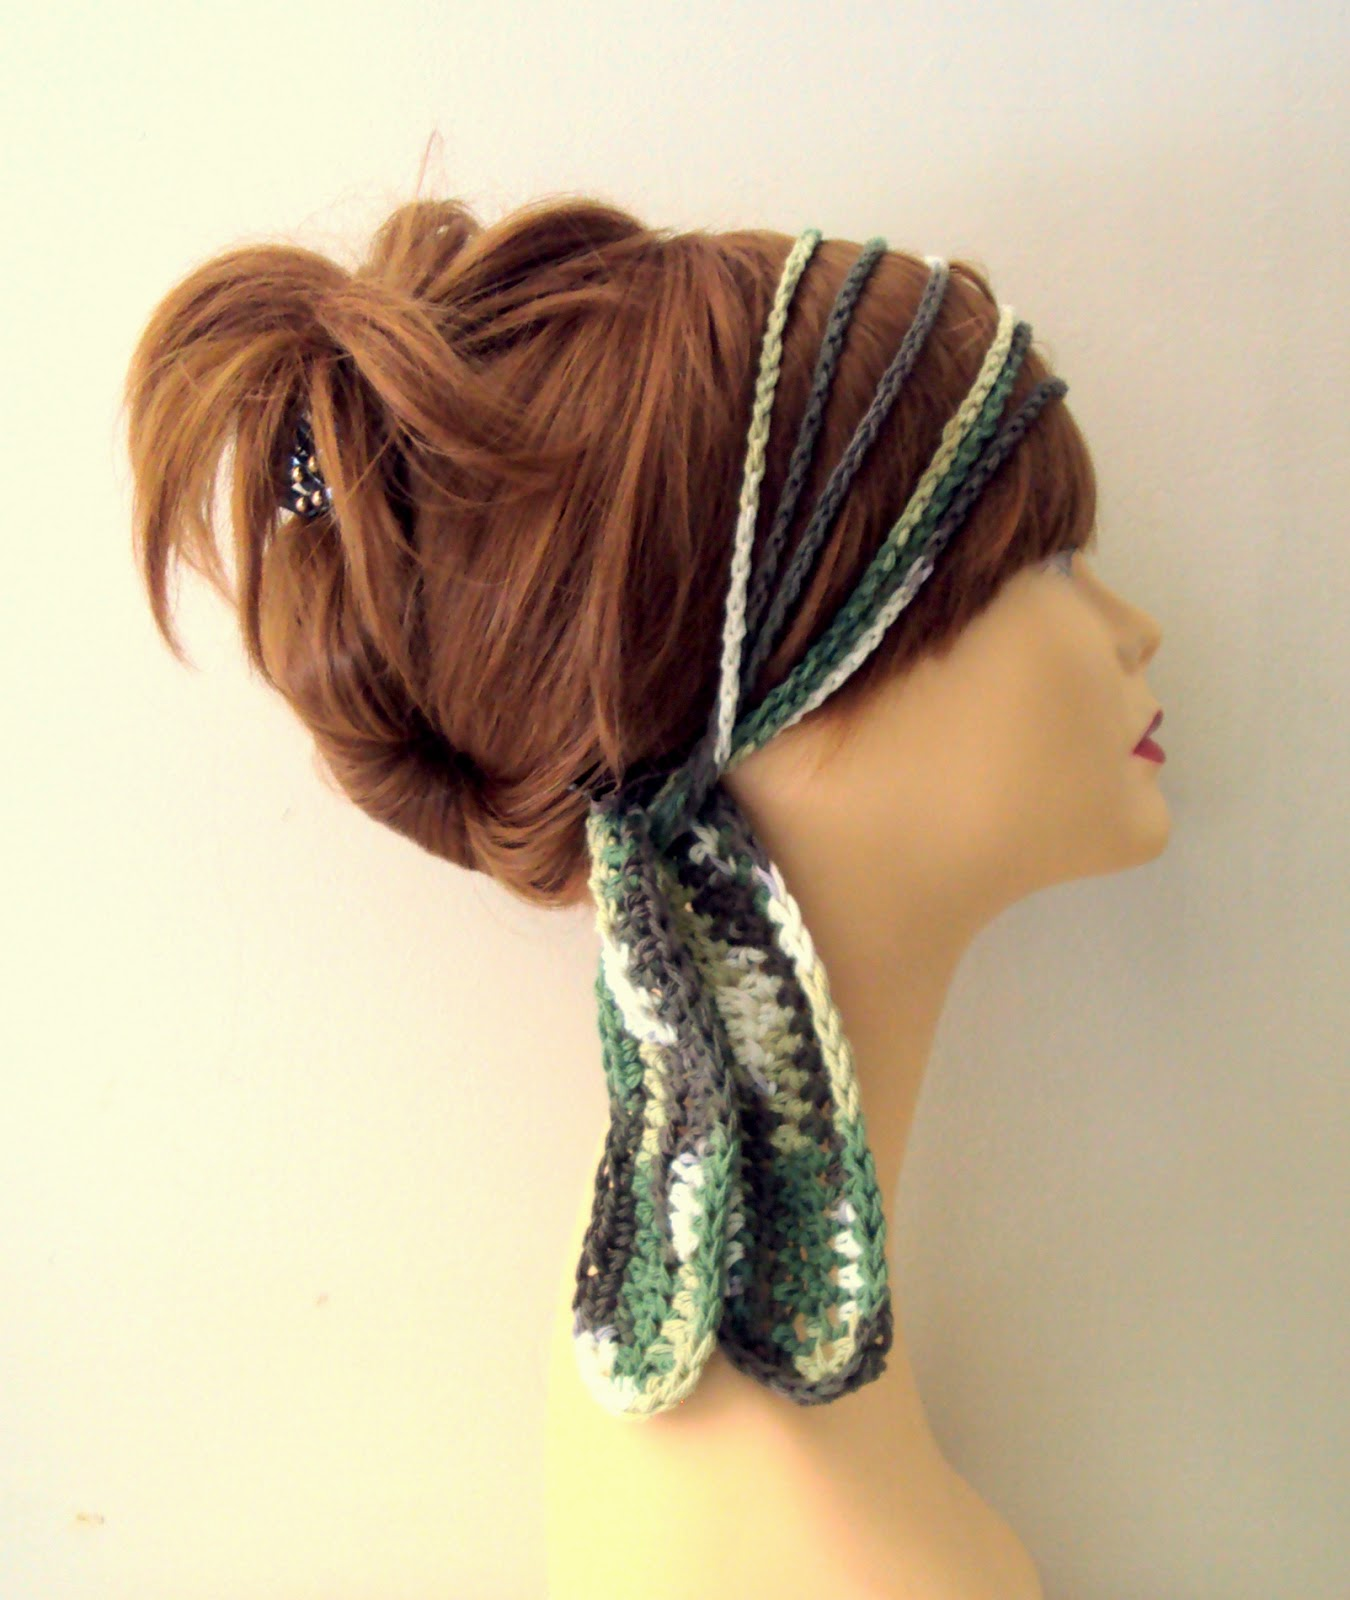 https://www.etsy.com/listing/229077290/crochet-boho-headband-cotton-chain?ref=listing-shop-header-0